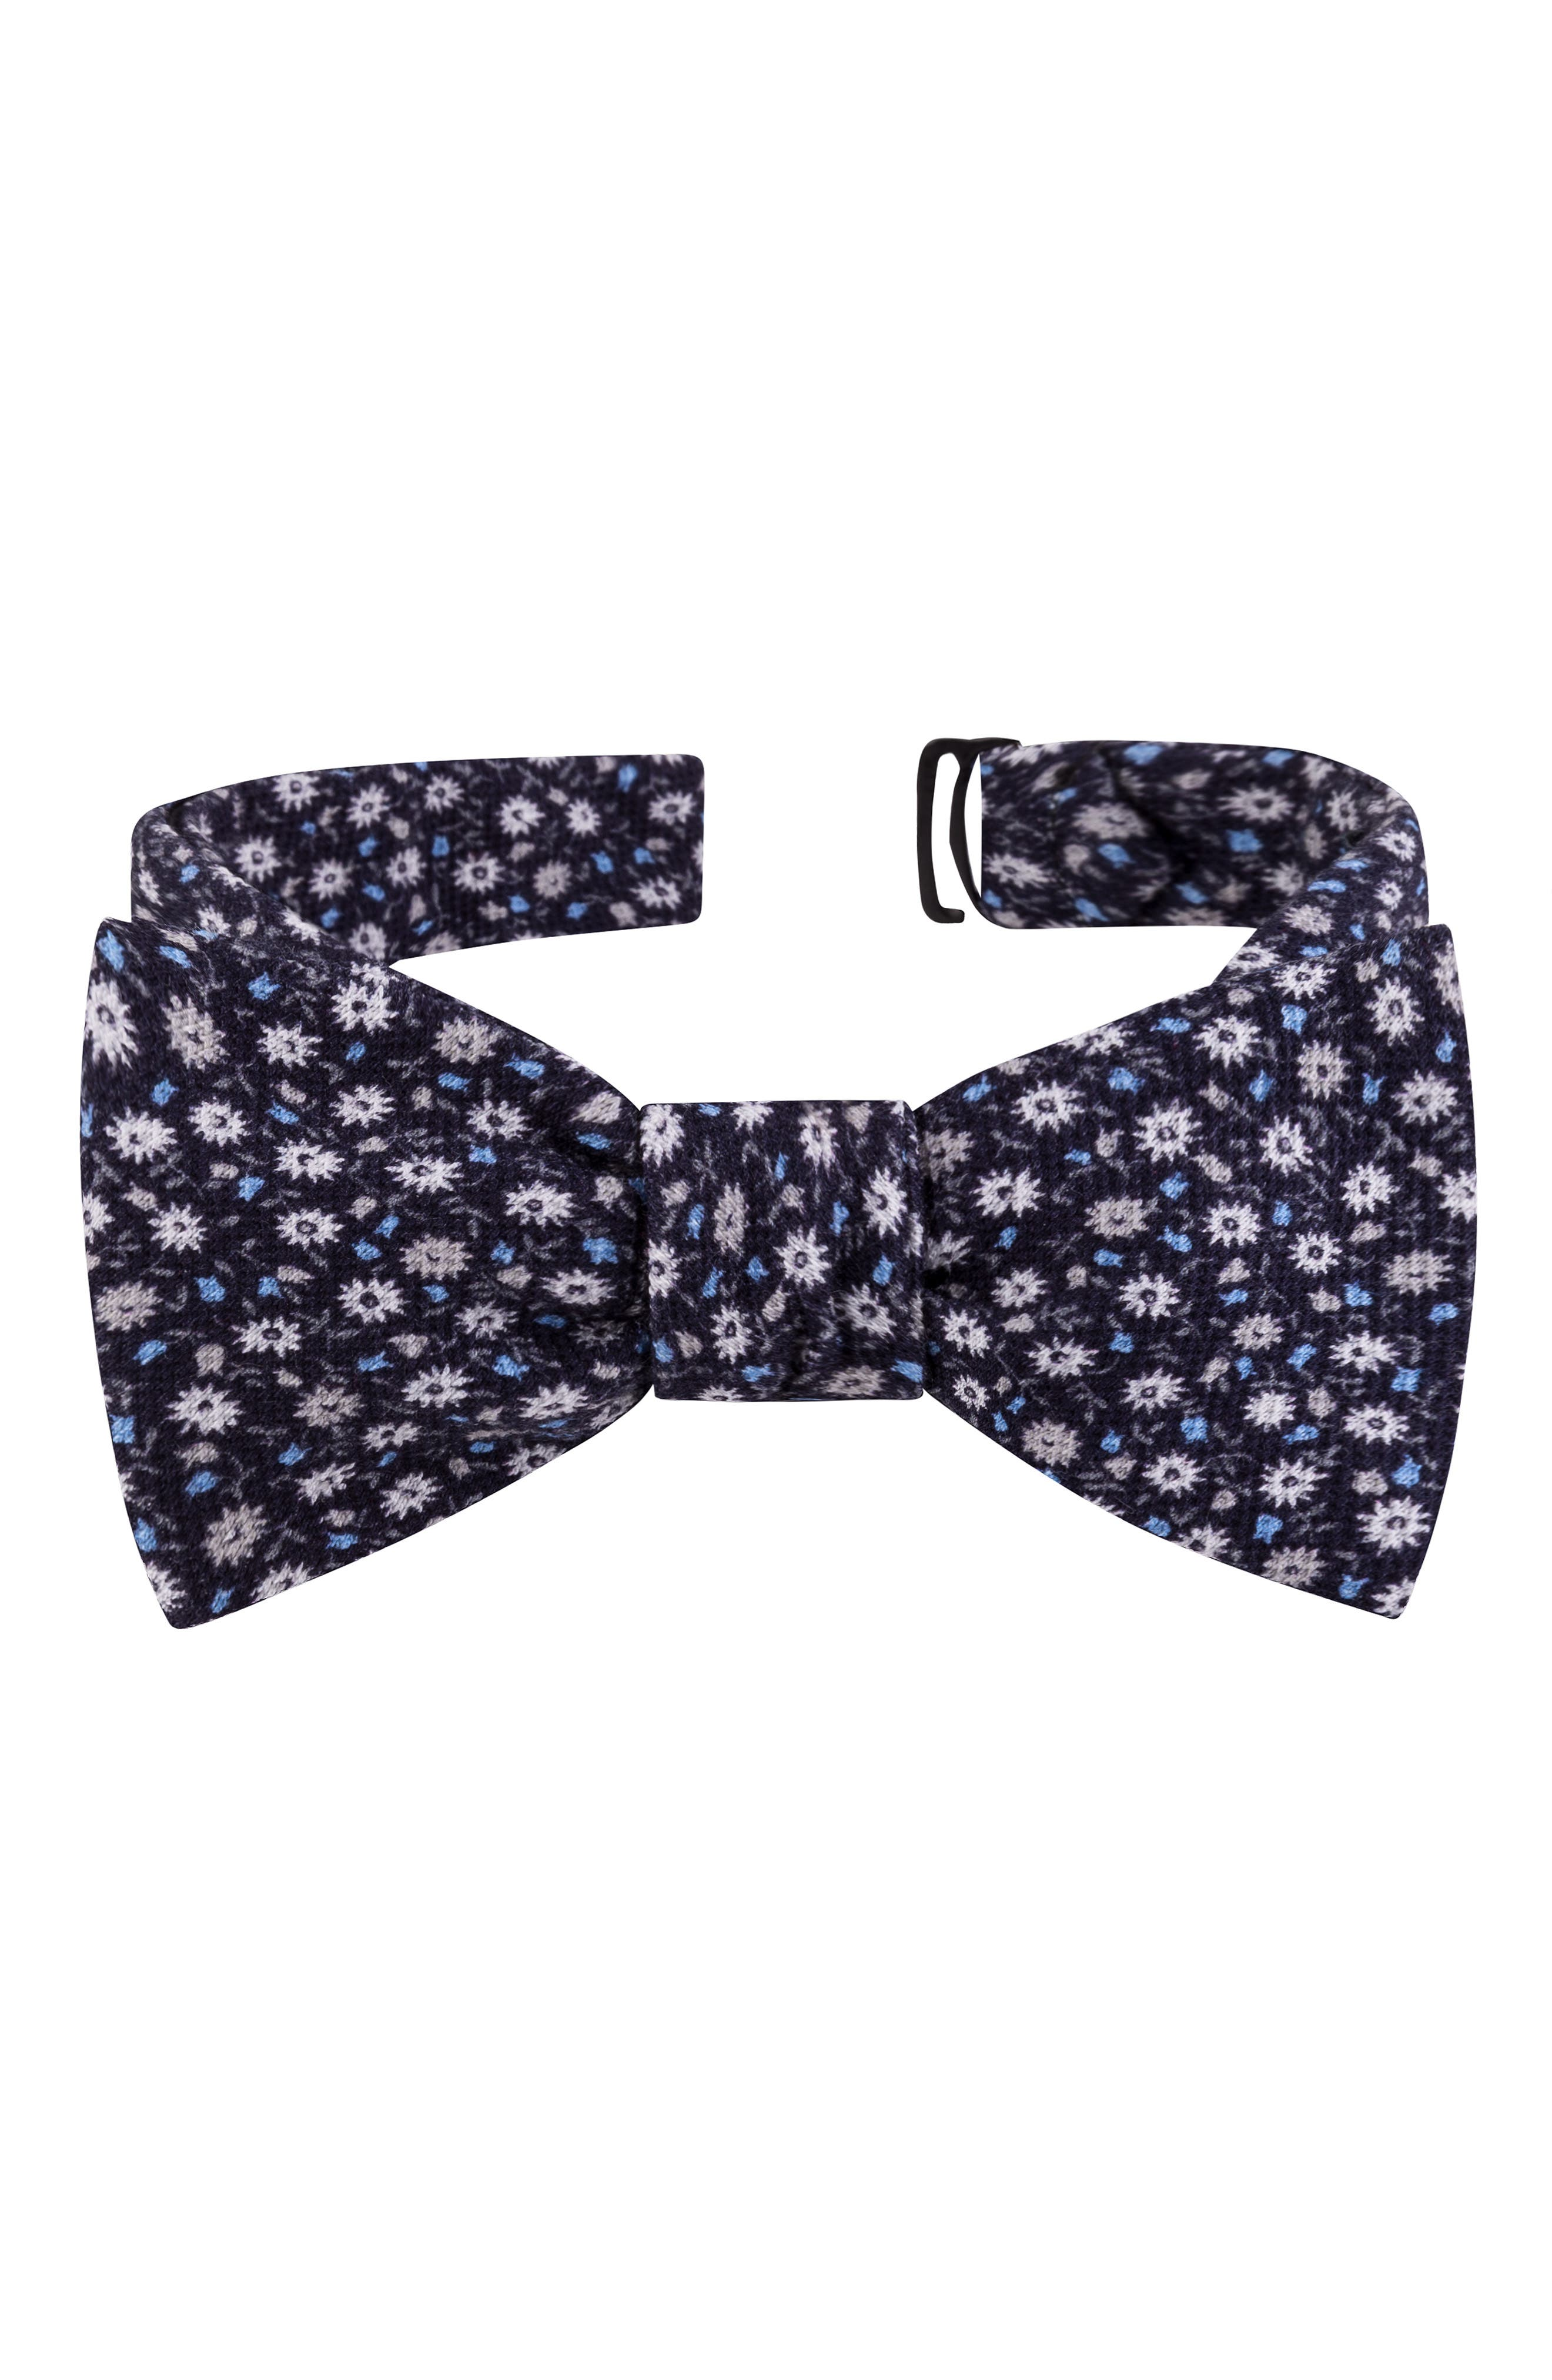 TED BAKER LONDON, Small Flower Silk Bow Tie, Main thumbnail 1, color, BLACK